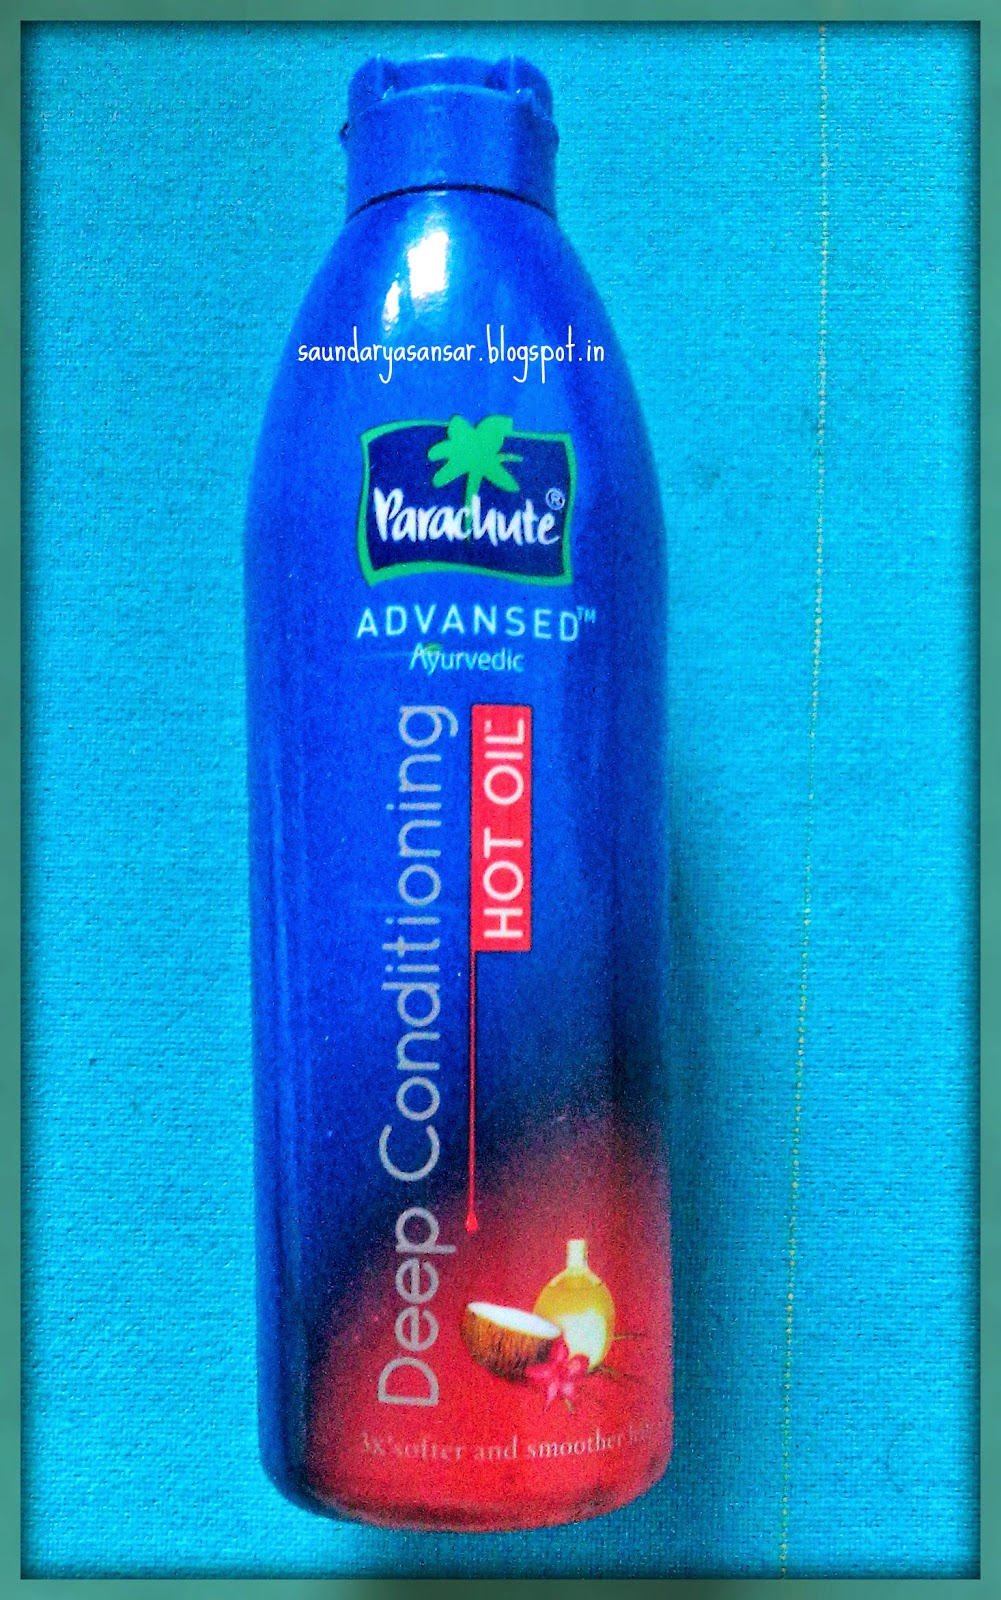 Parachute Advansed Deep Conditining Hot Oil Review